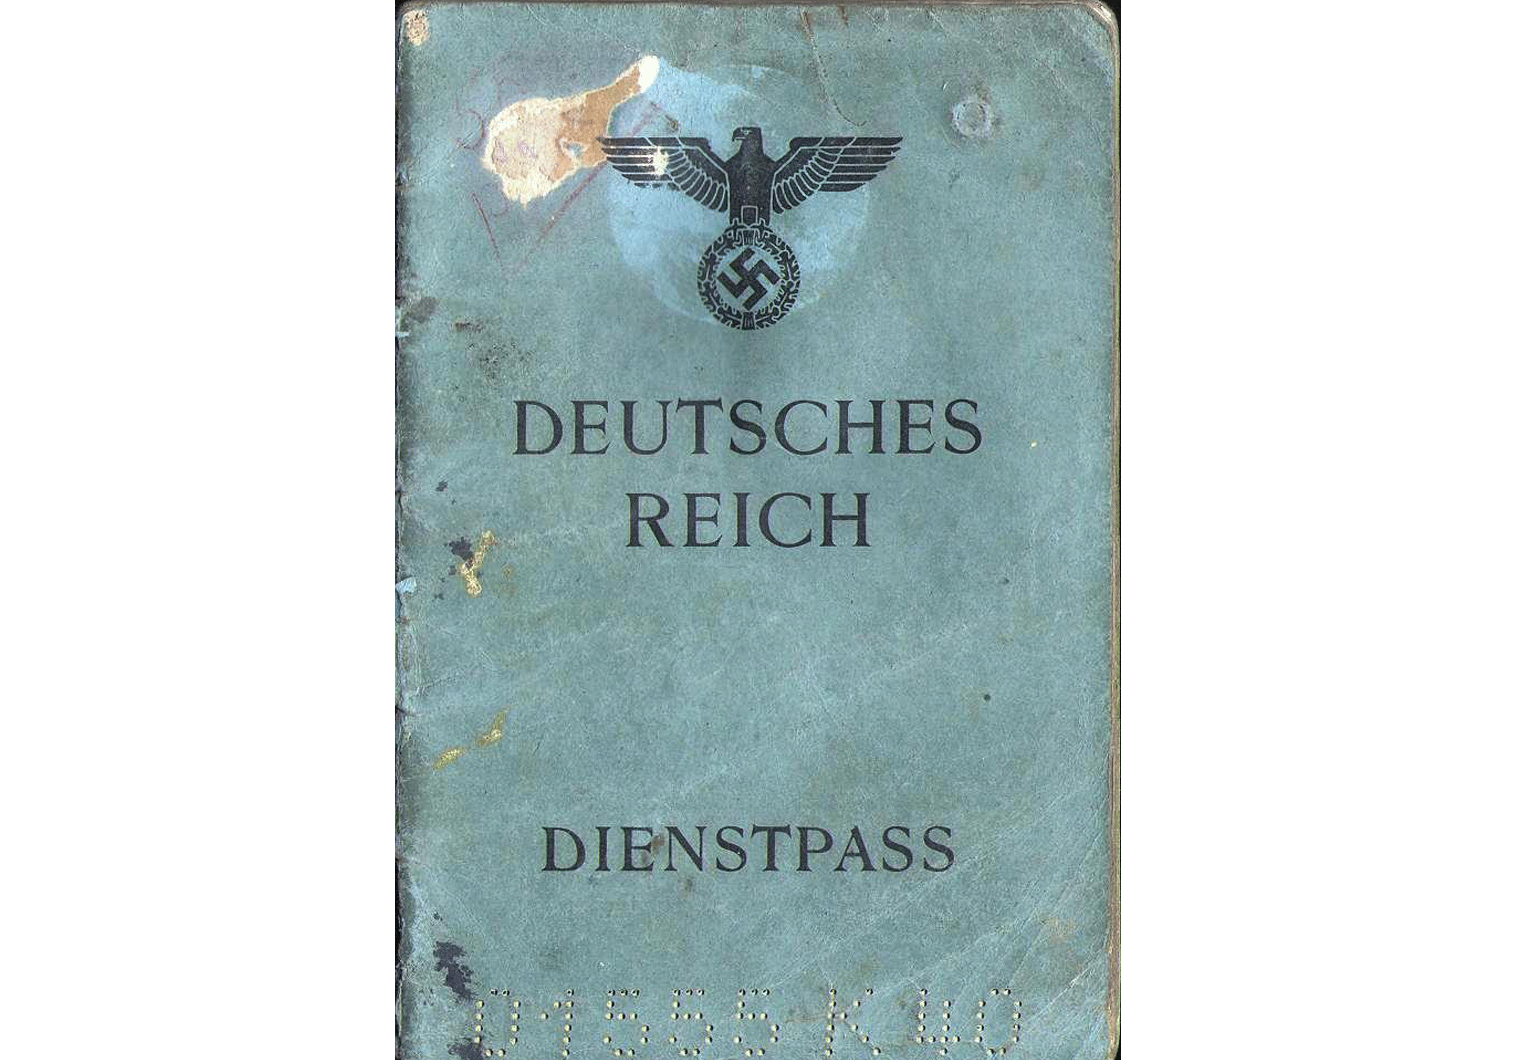 1944 German Service-Passport Bucharest war time issued Dienstpass.